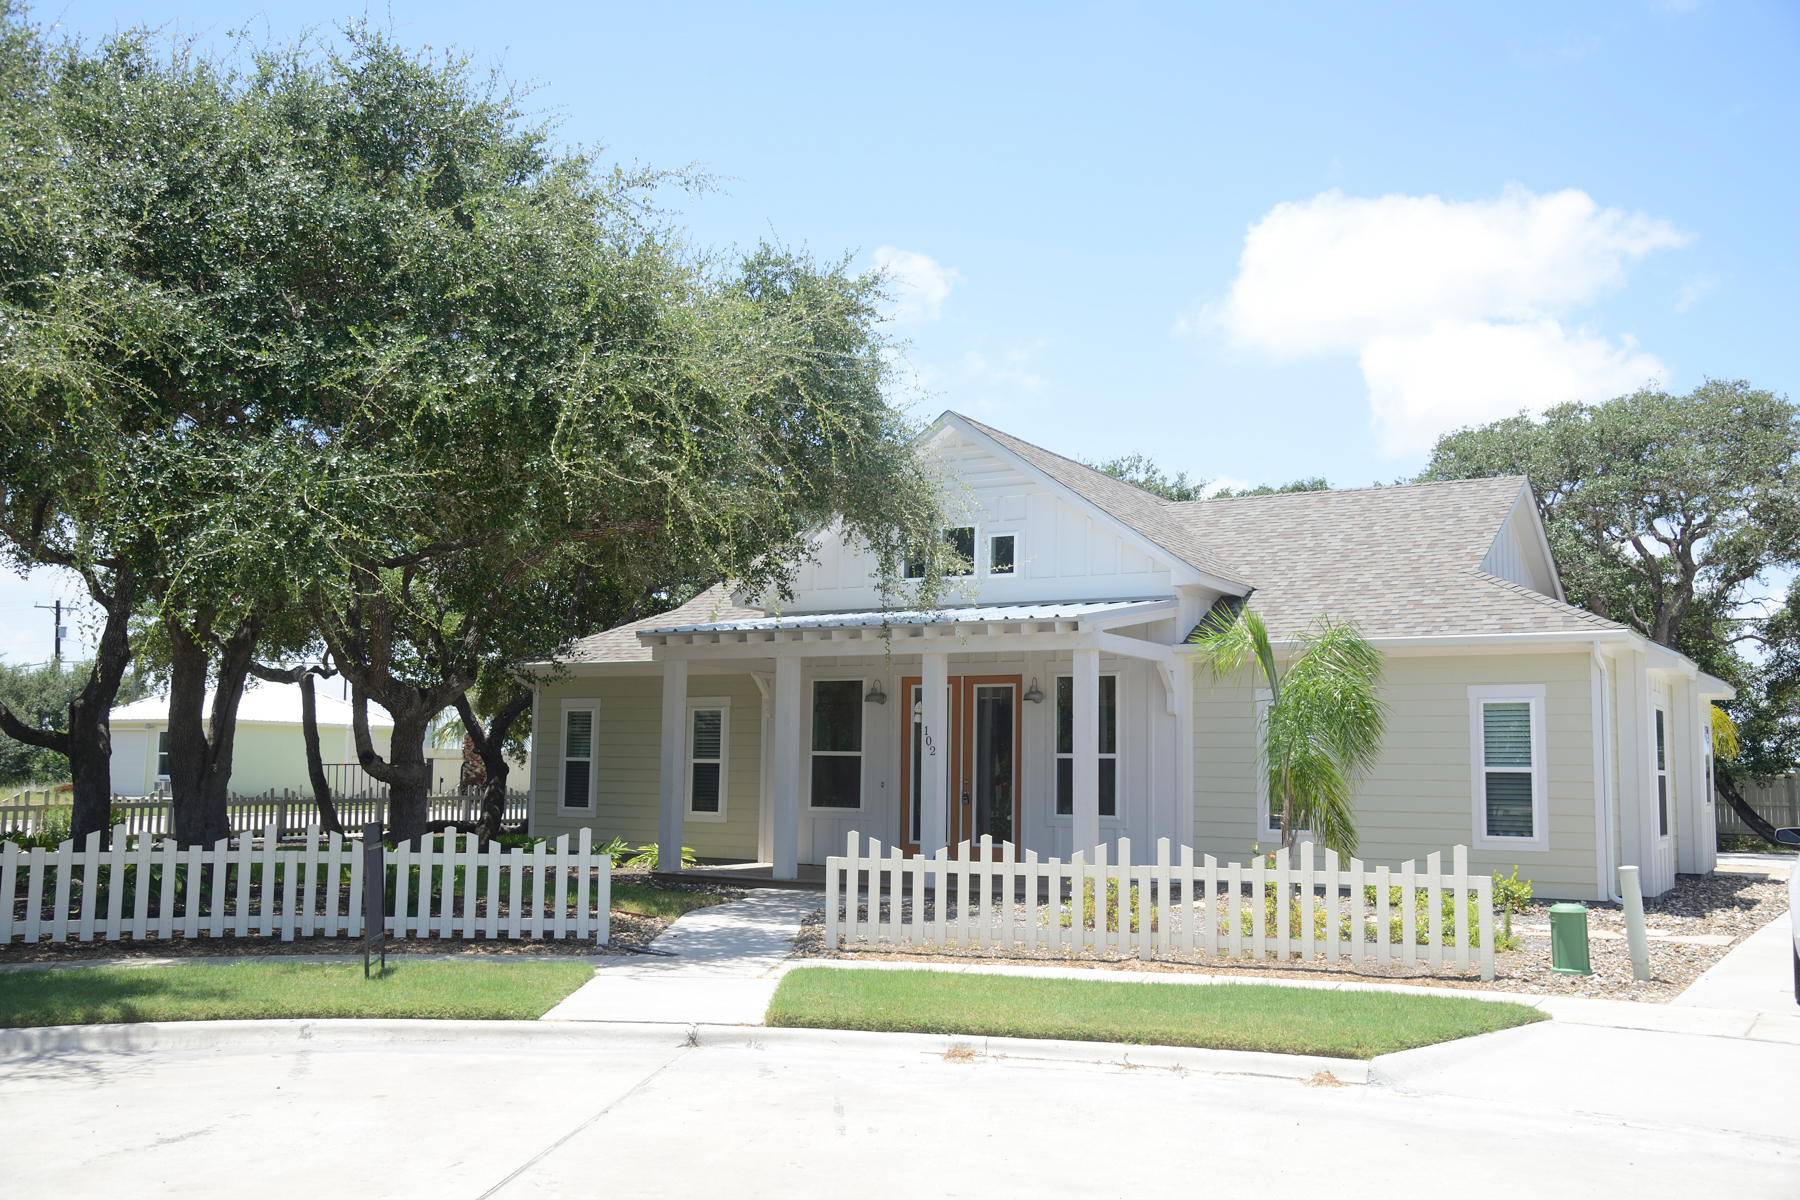 Single Family Home for Sale at Lovely Home in Rockport 102 Boardwalk Ave Rockport, Texas 78382 United States